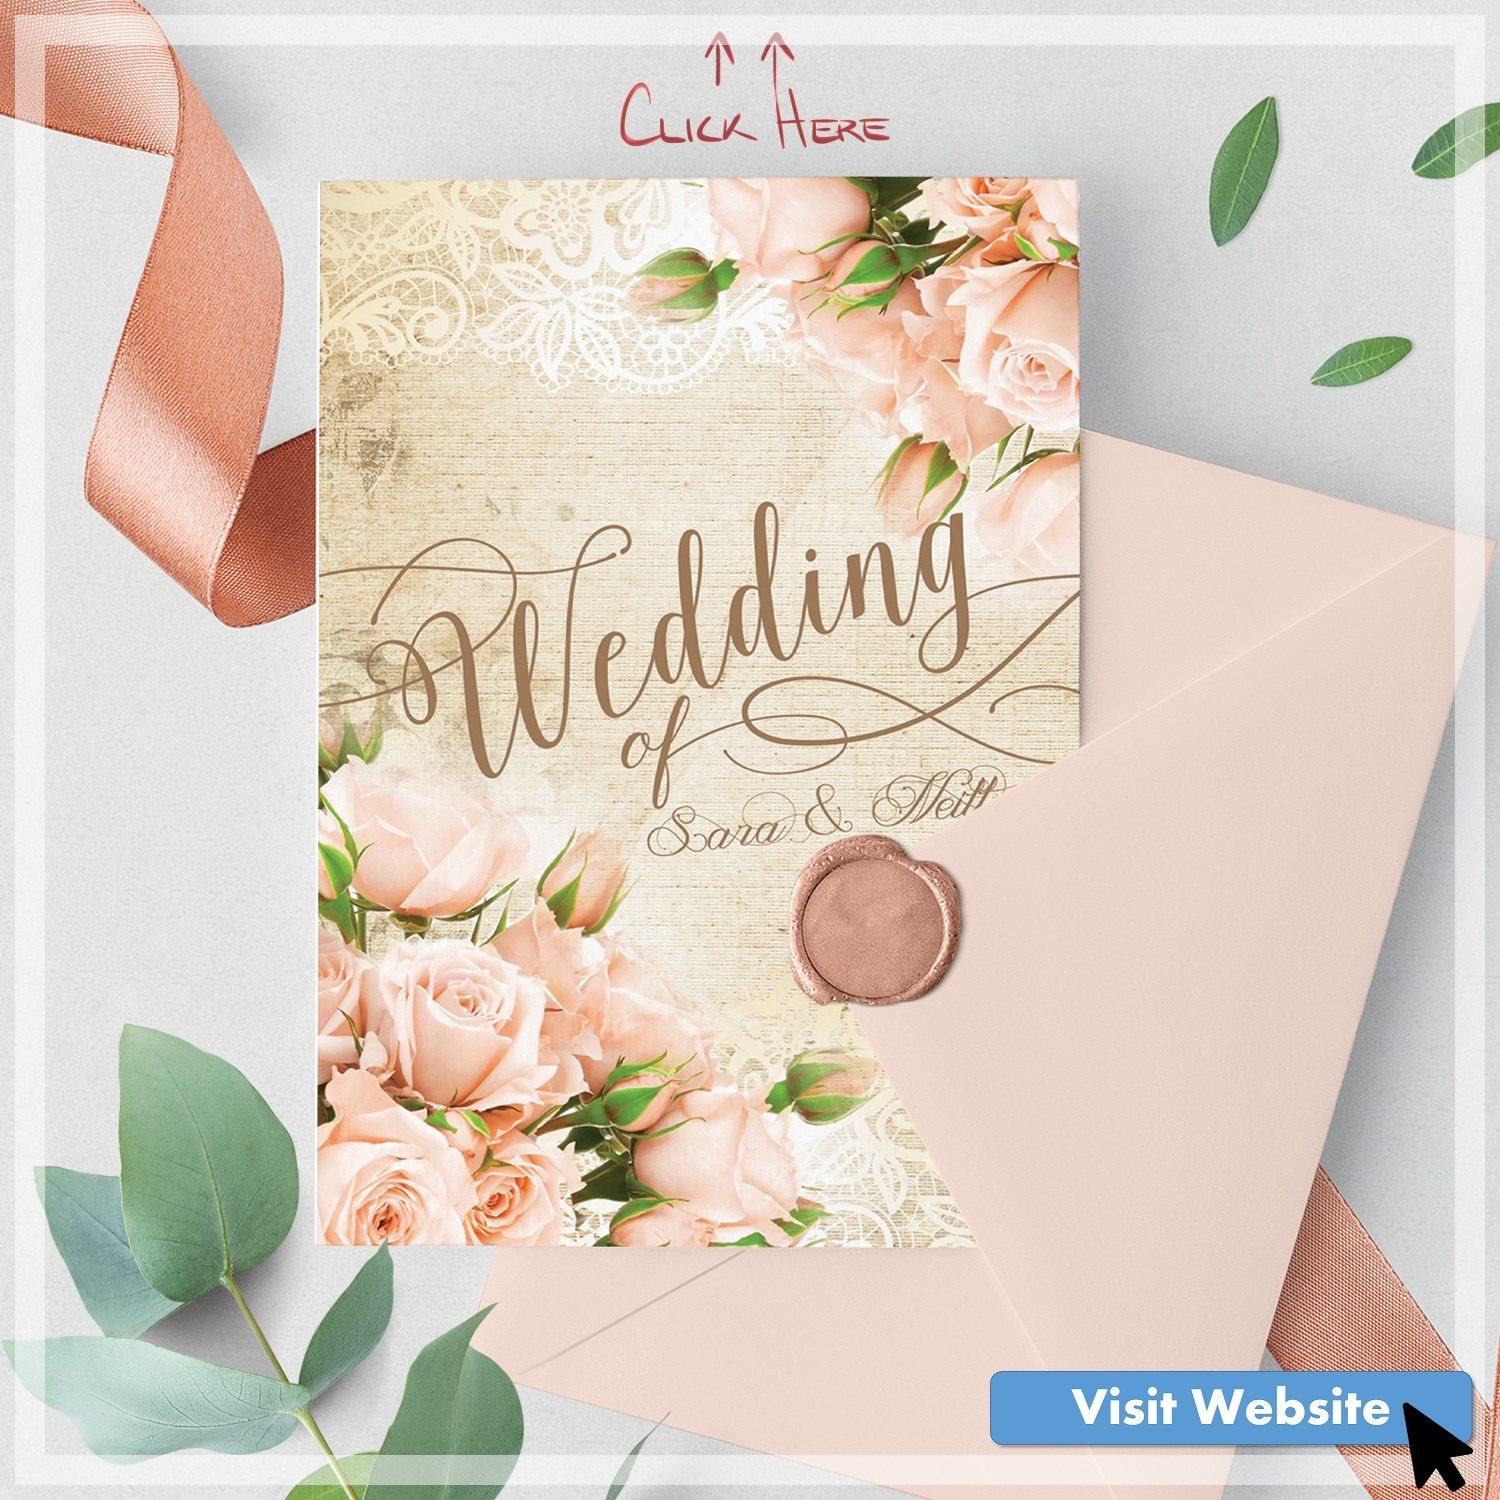 Pinterest's best ideas and inspiration for handmade wedding invitations,handmade wedding invitations diy,handmade wedding invitations homemade,handmade wedding invitations simple,handmade wedding invitations rustic,handmade wedding invitations indian,handmade wedding invitations elegant,handmade wedding invitations hand made #wedding #weddingcard #weddinginvations #handmade